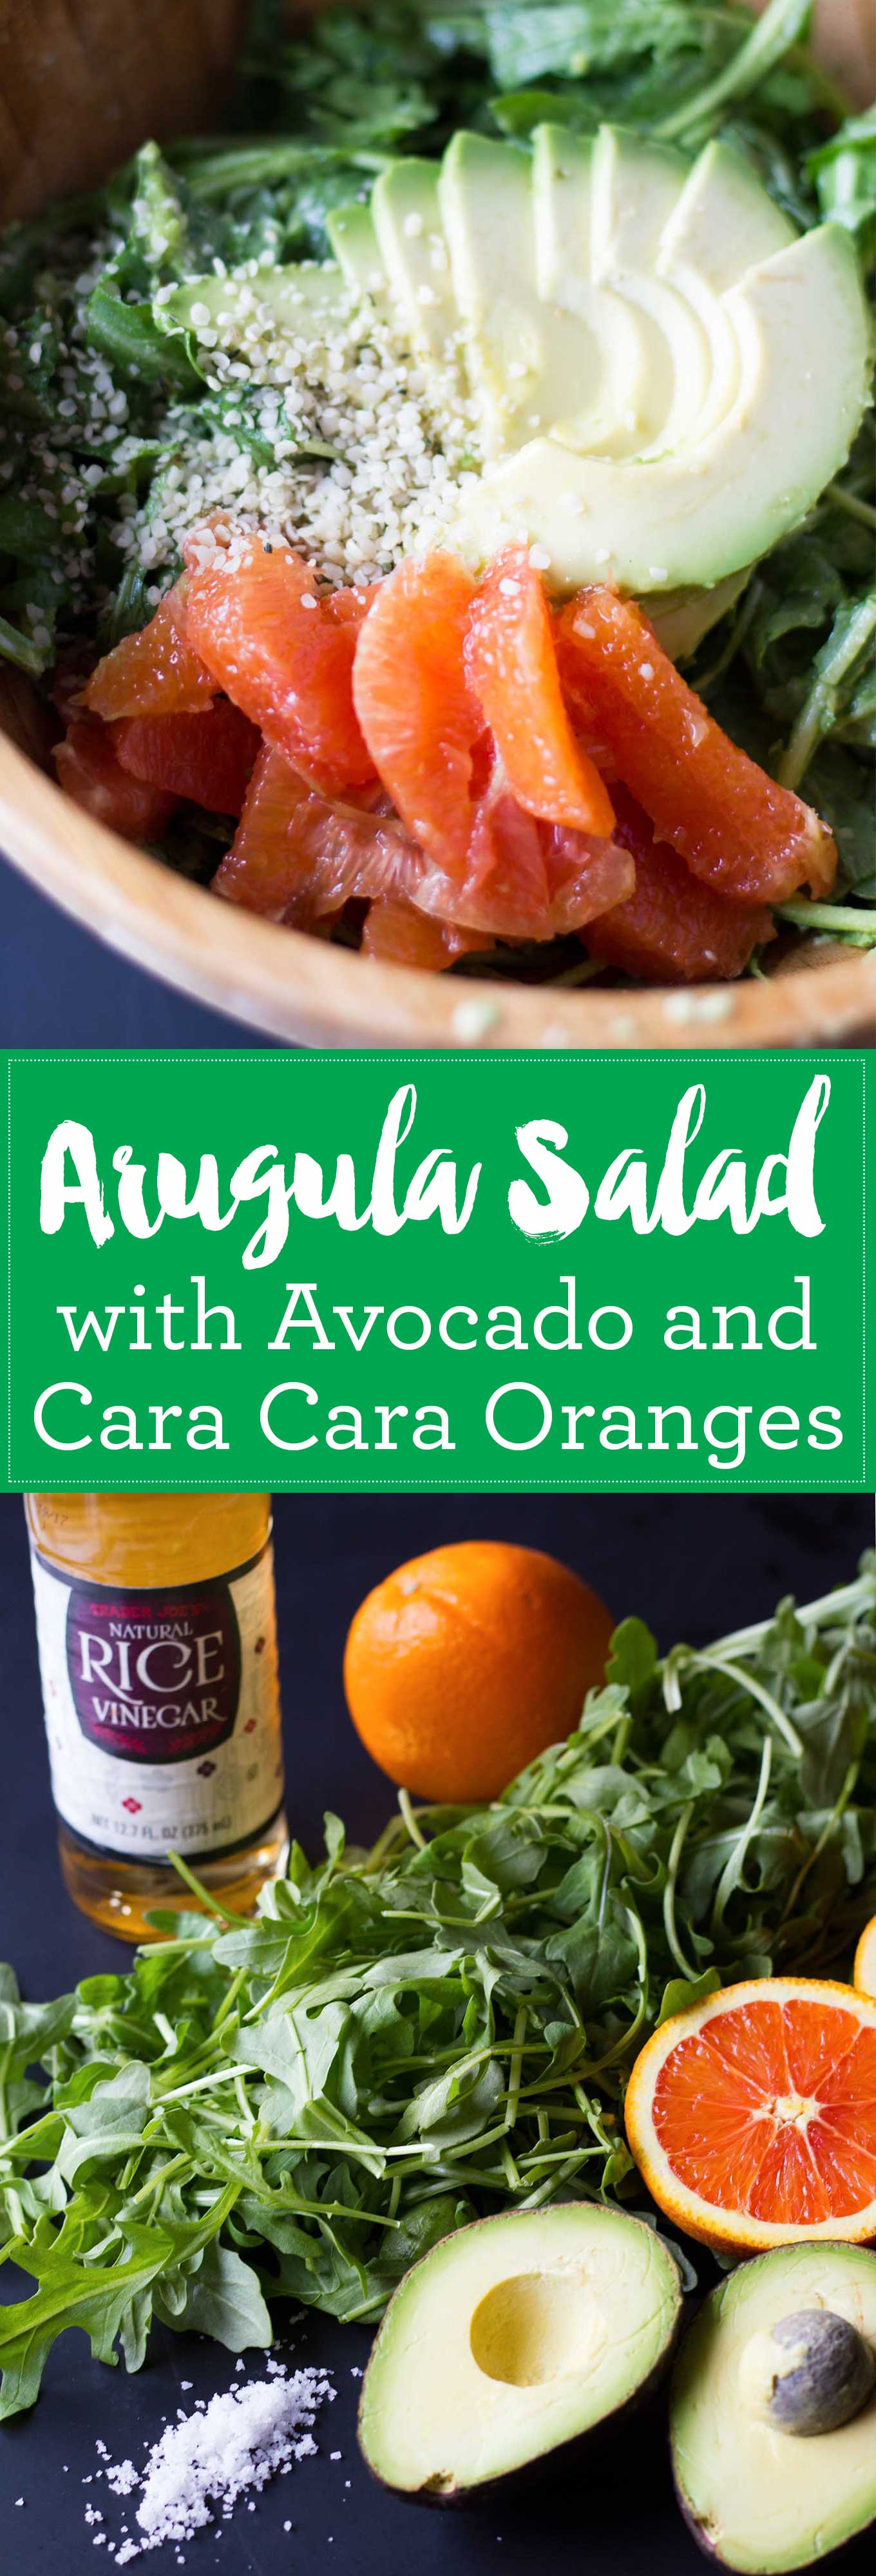 Arugula Salad with Avocado and Cara Cara Oranges - Vegan, Oil-Free, Gluten-Free| https://passtheplants.com